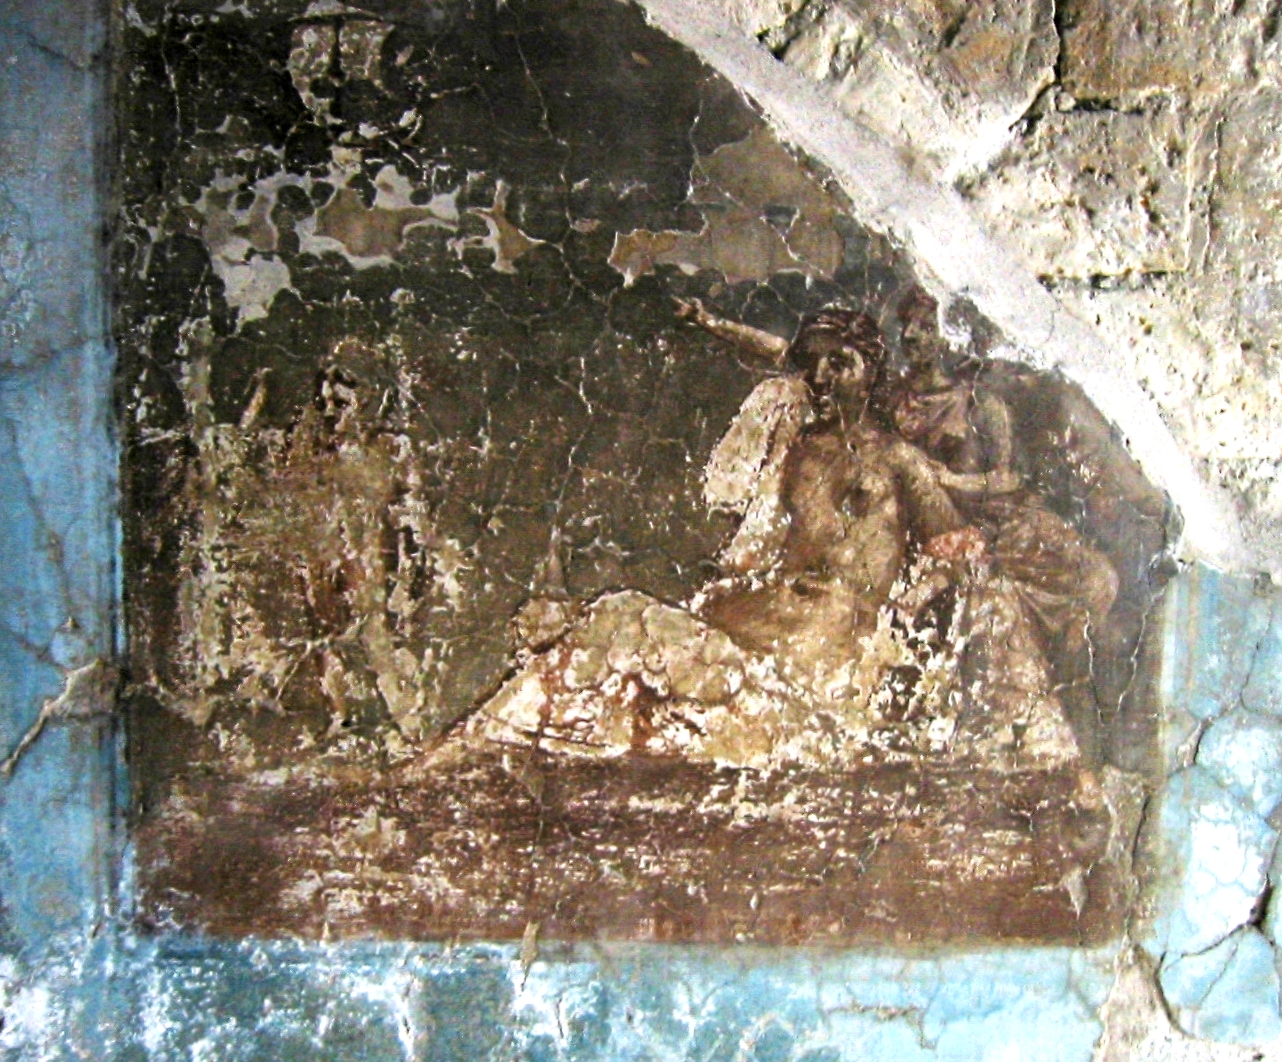 http://upload.wikimedia.org/wikipedia/commons/1/1e/Herculaneum_Erotic_Fresco.jpg